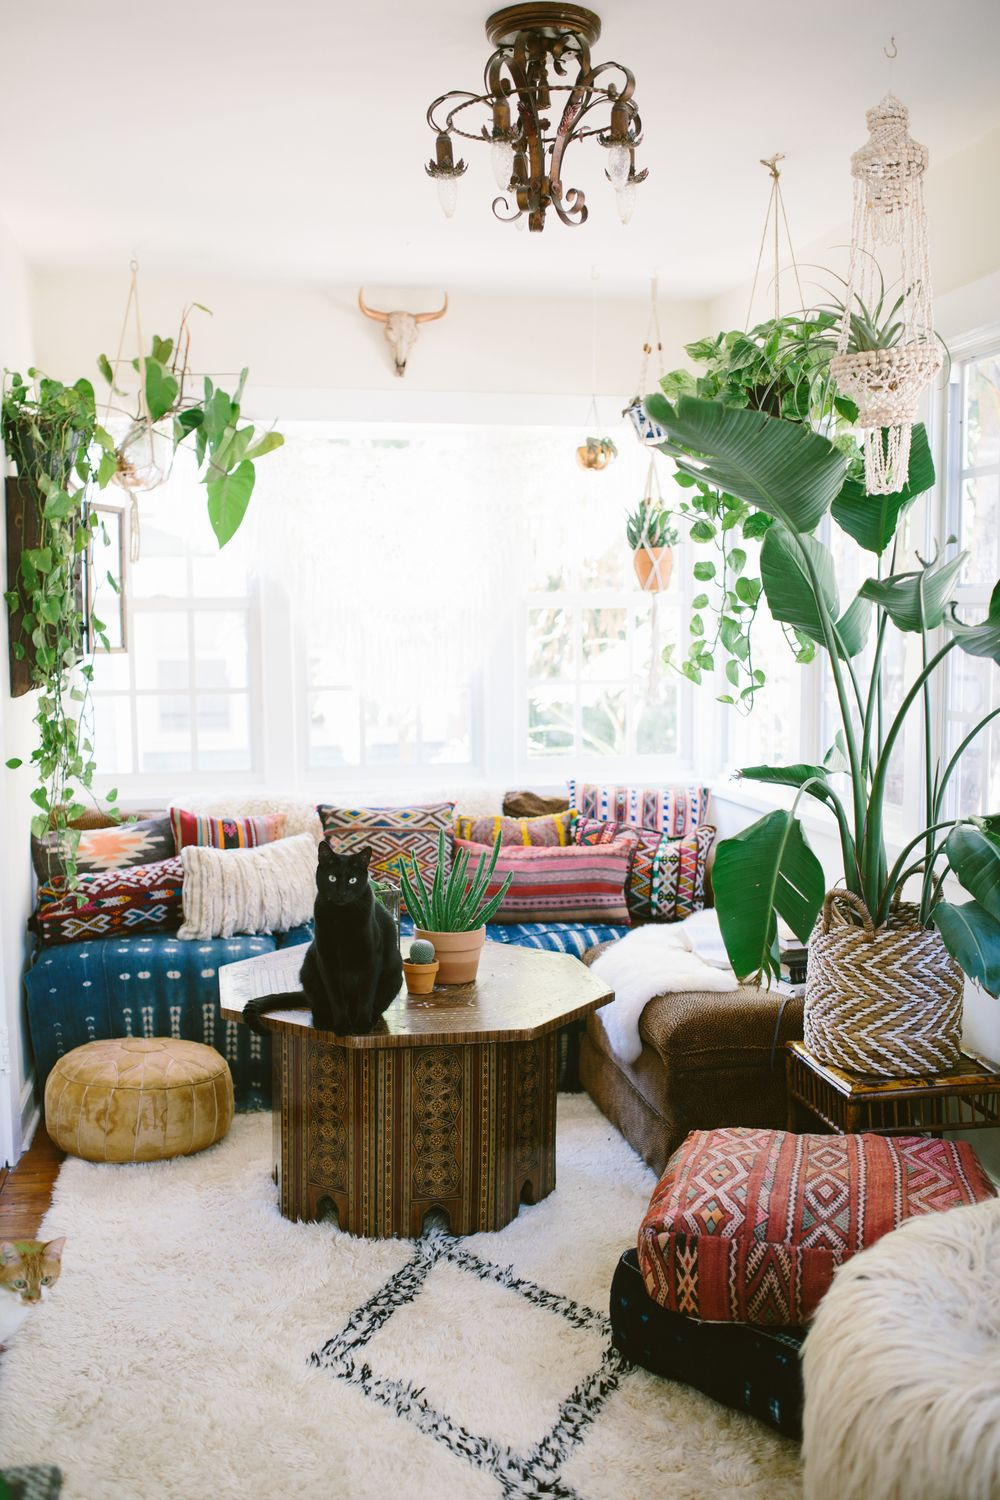 Modern bohemian home decor  How to Make Your Brand Stand Out in a Crowded Market  Apartments